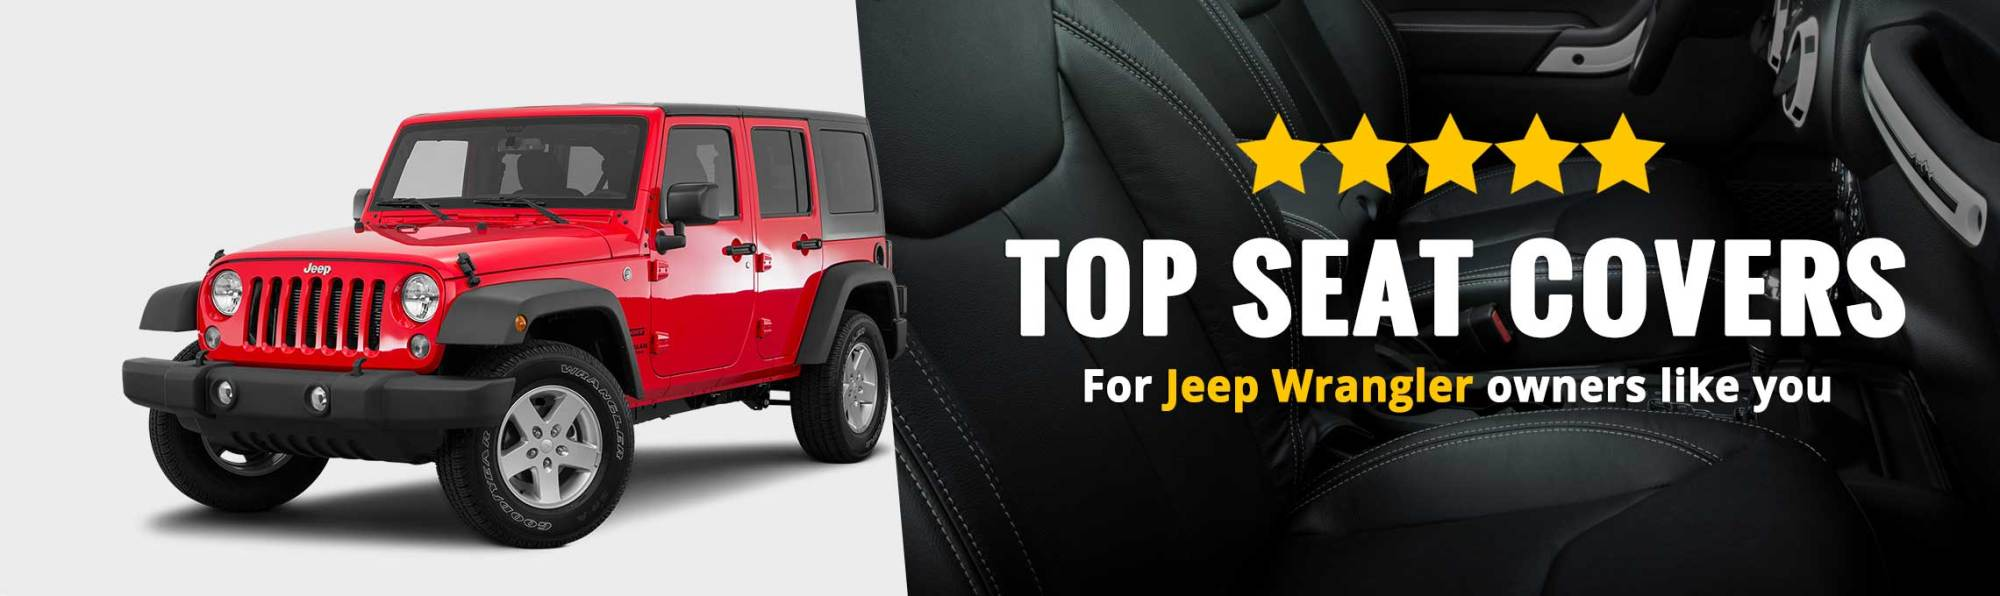 hight resolution of jeep wrangler seat cover options